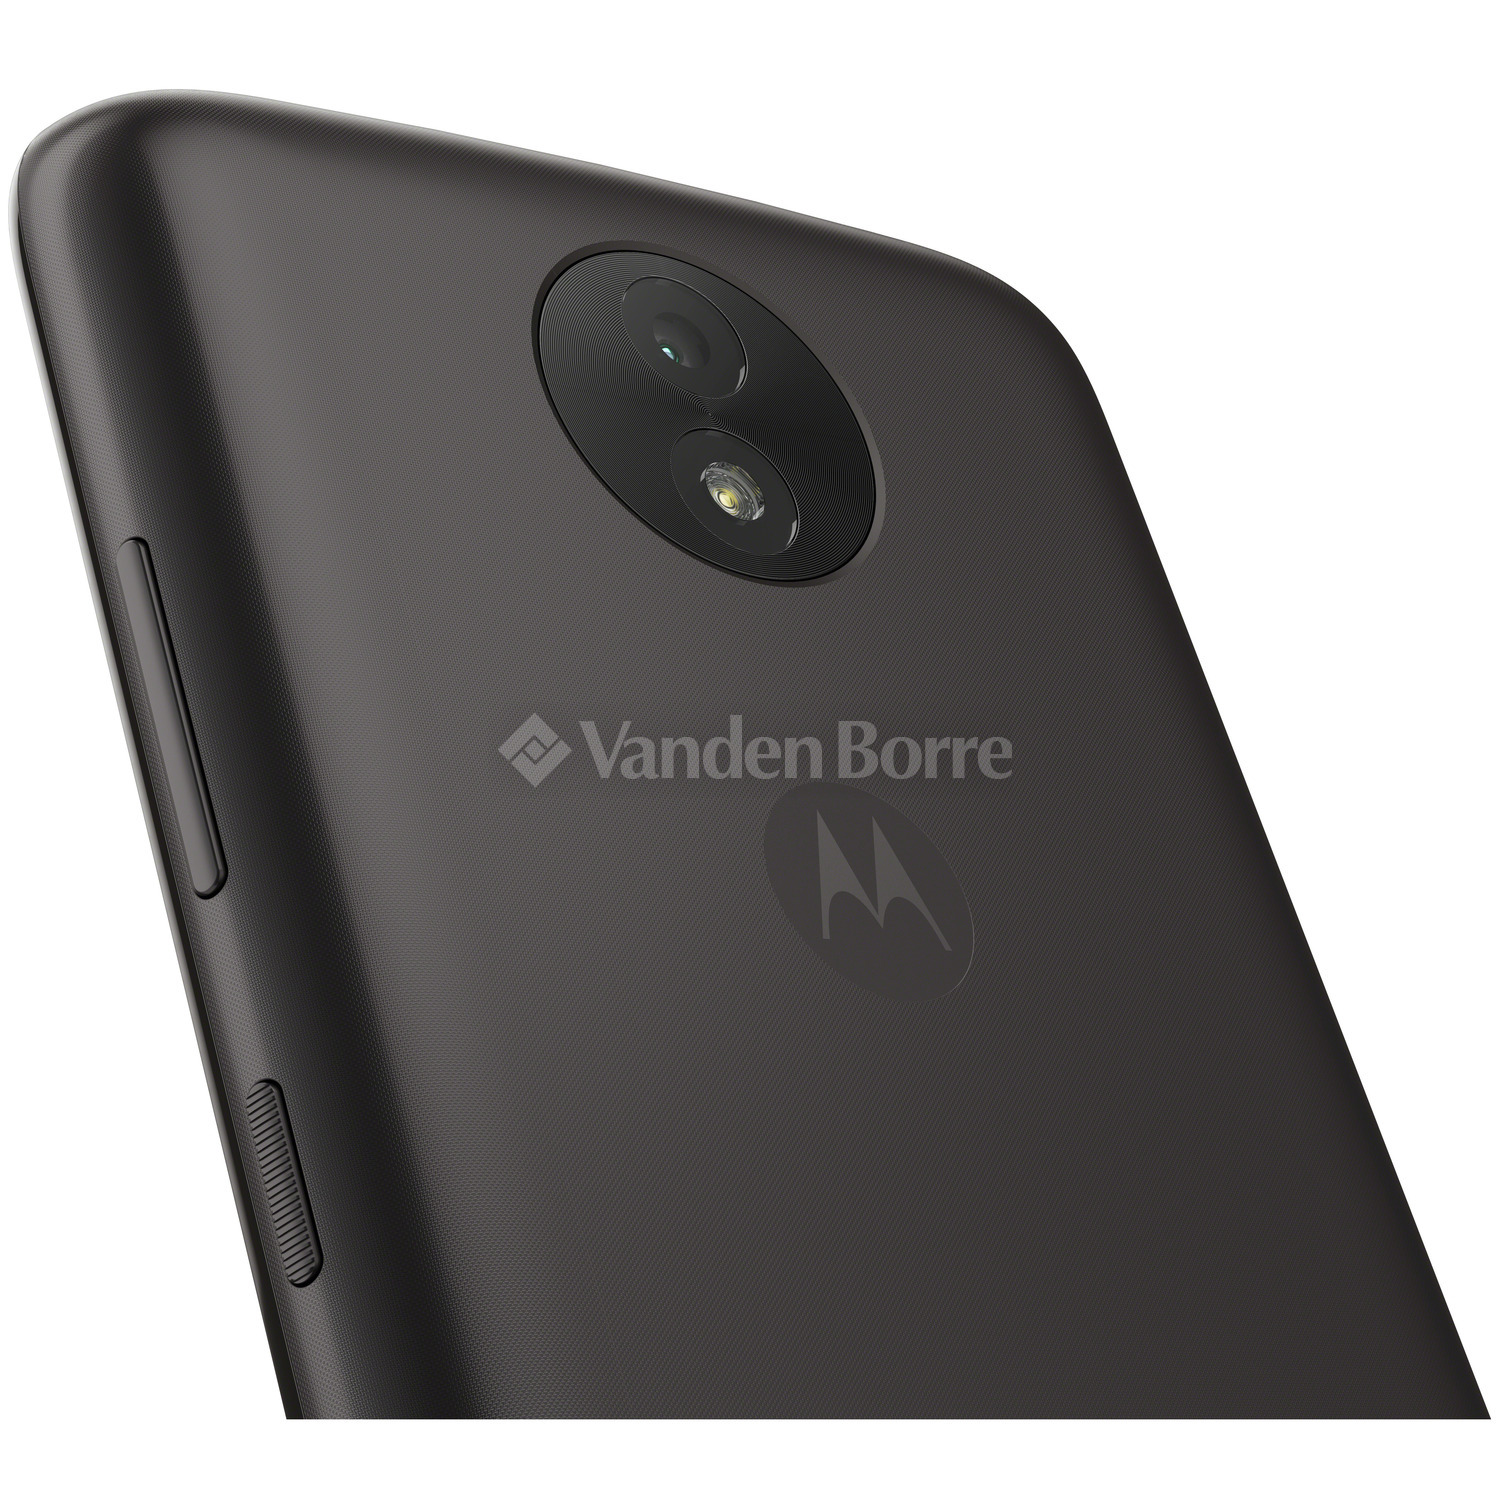 motorola moto c plus 2gb black chez vanden borre comparez et achetez facilement. Black Bedroom Furniture Sets. Home Design Ideas